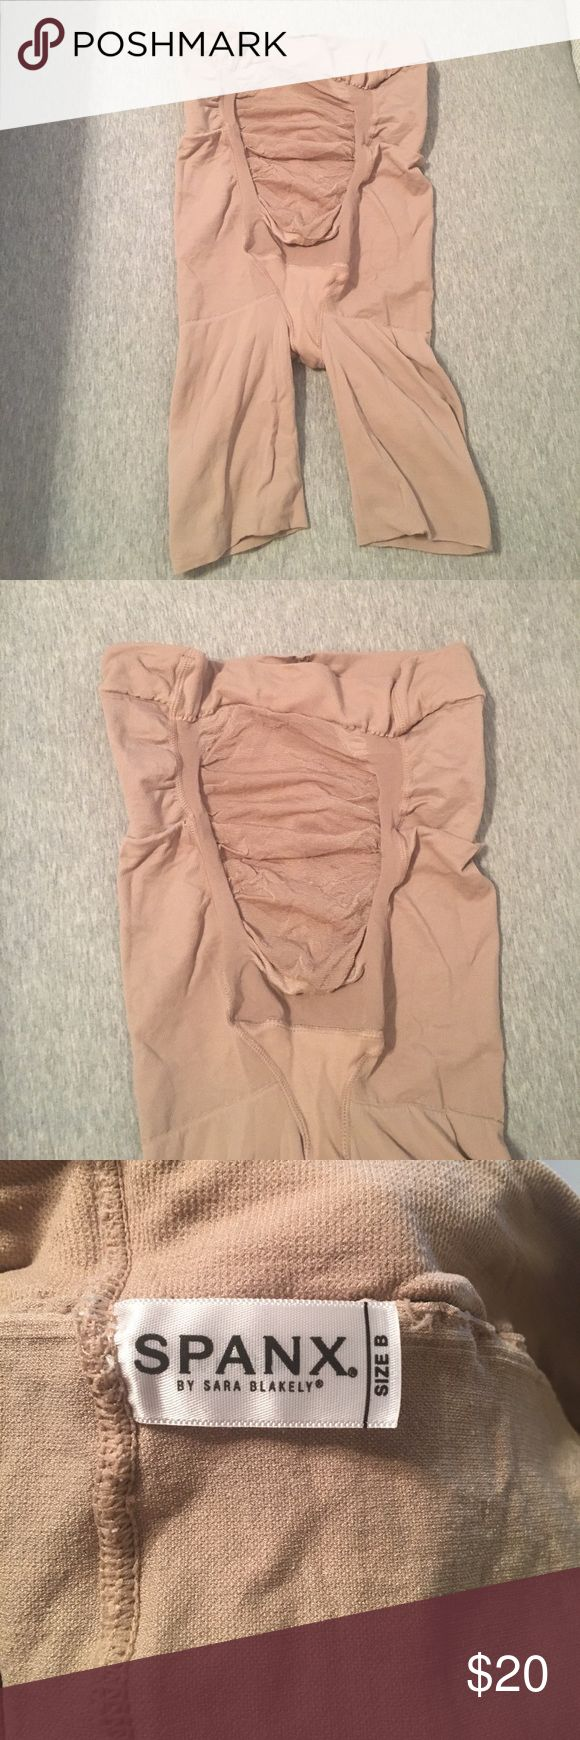 🤰Maternity Spanx MAMA shorts Nude Size B Worn once. Great condition Spanx. Great under bodycon dresses. Super comfortable due to the stretchy belly layer. Size B.   These babies grow with you, so choose your pre-pregnancy size!  Support Level Smooth: A Little Hug  Soft yarns stretch with your growing belly Provides lower back support Comfortably shapes the rear and thighs Body-shaping control that's comfy and flattering Wear as underwear to eliminate VPL (Visible Panty Lines) Perfect to…